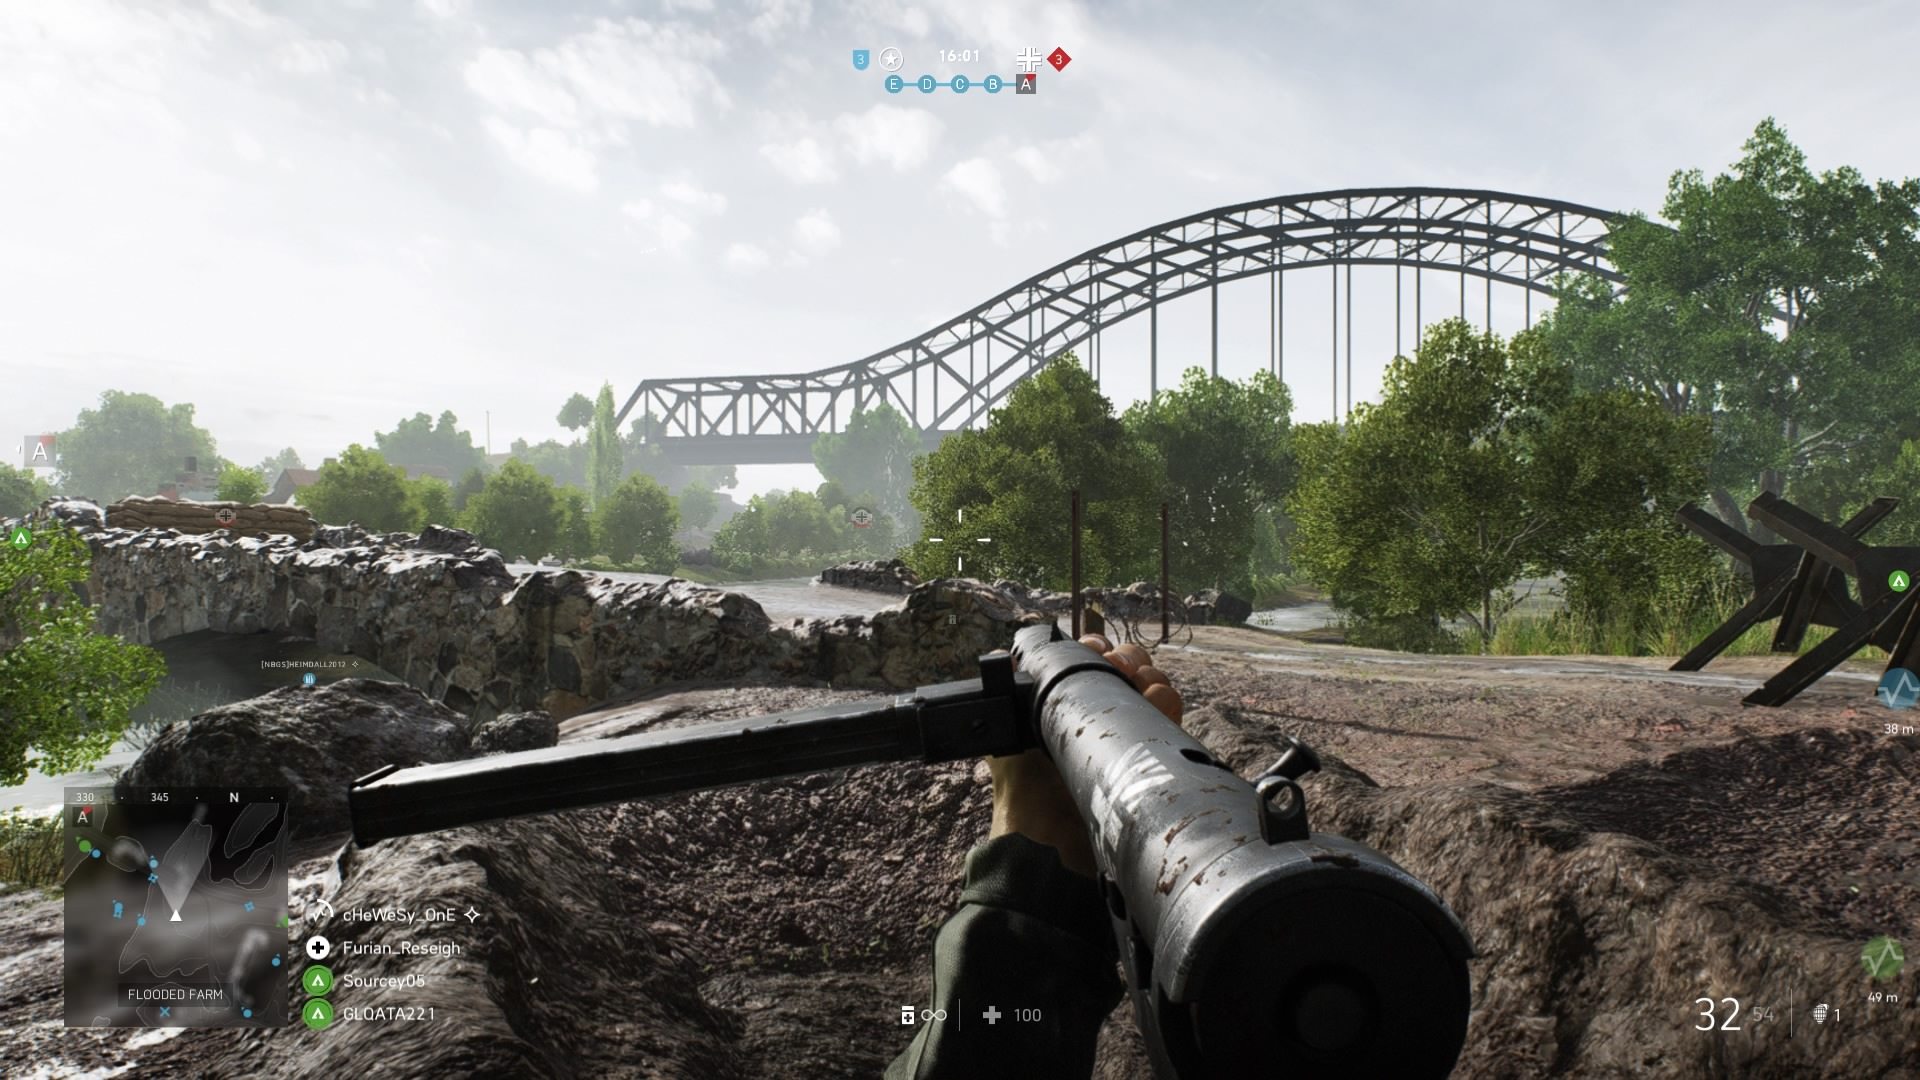 Battlefield review: improved incomplete multiplayer z7kSgtbAQghG7BZ2Uo8B